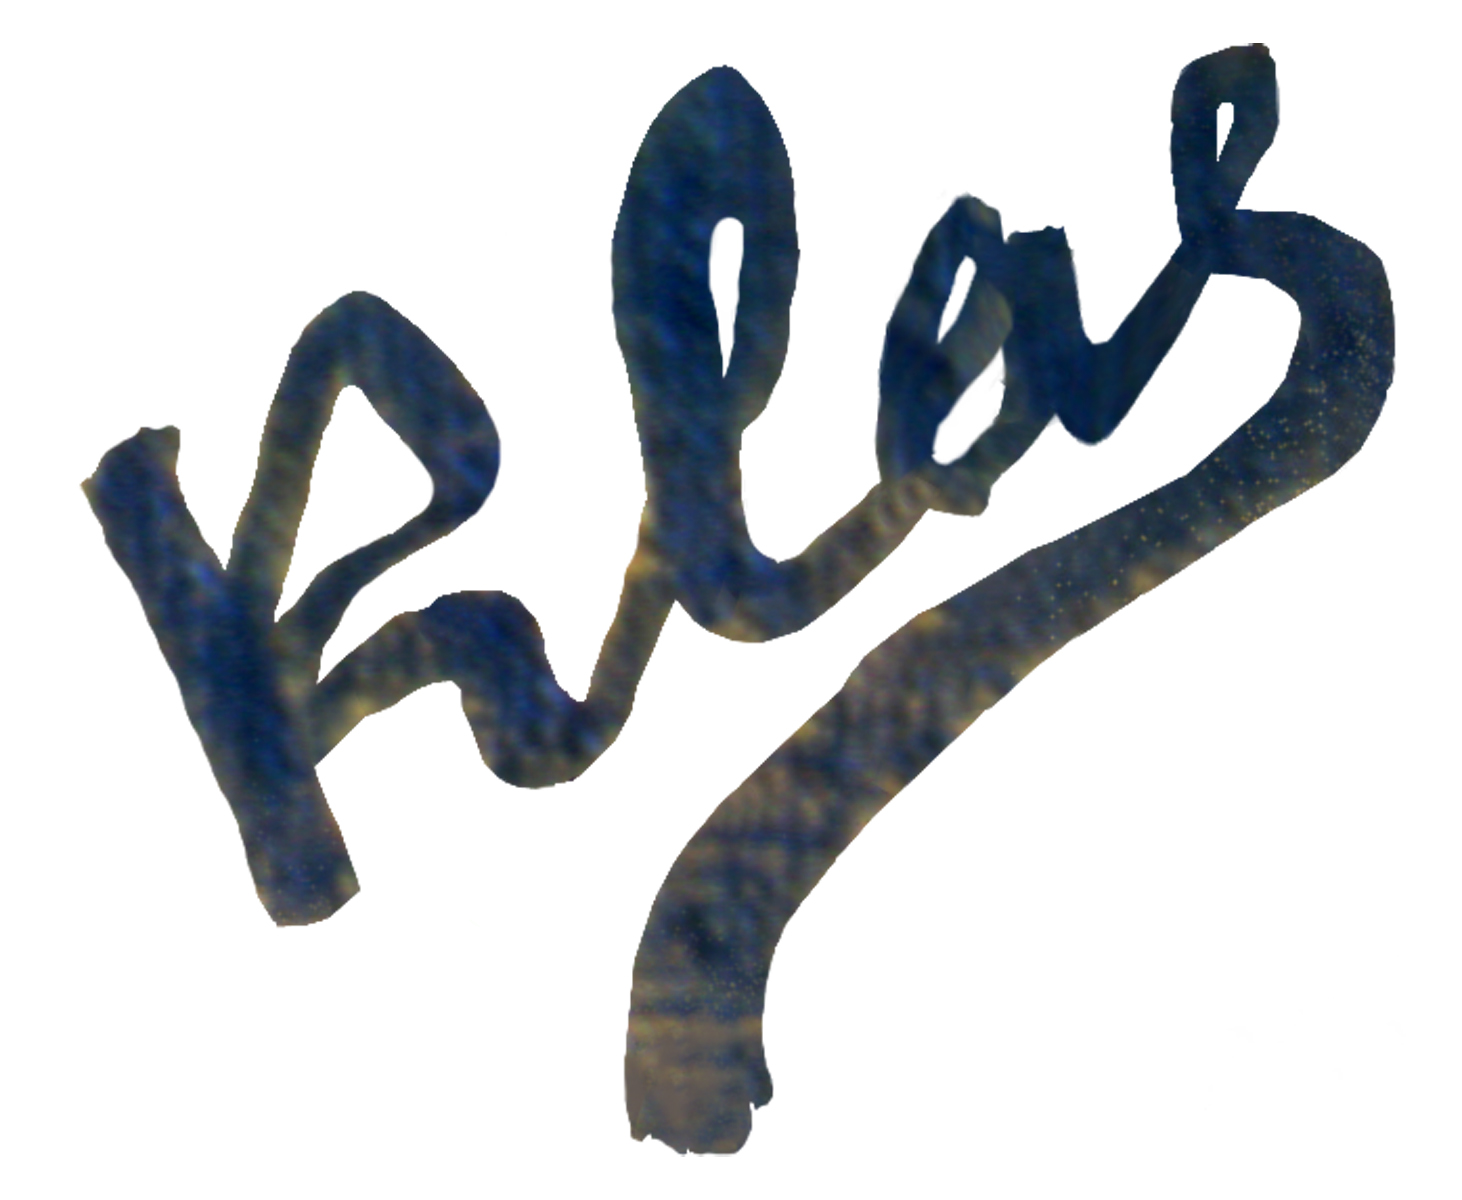 Alex Klas's Signature